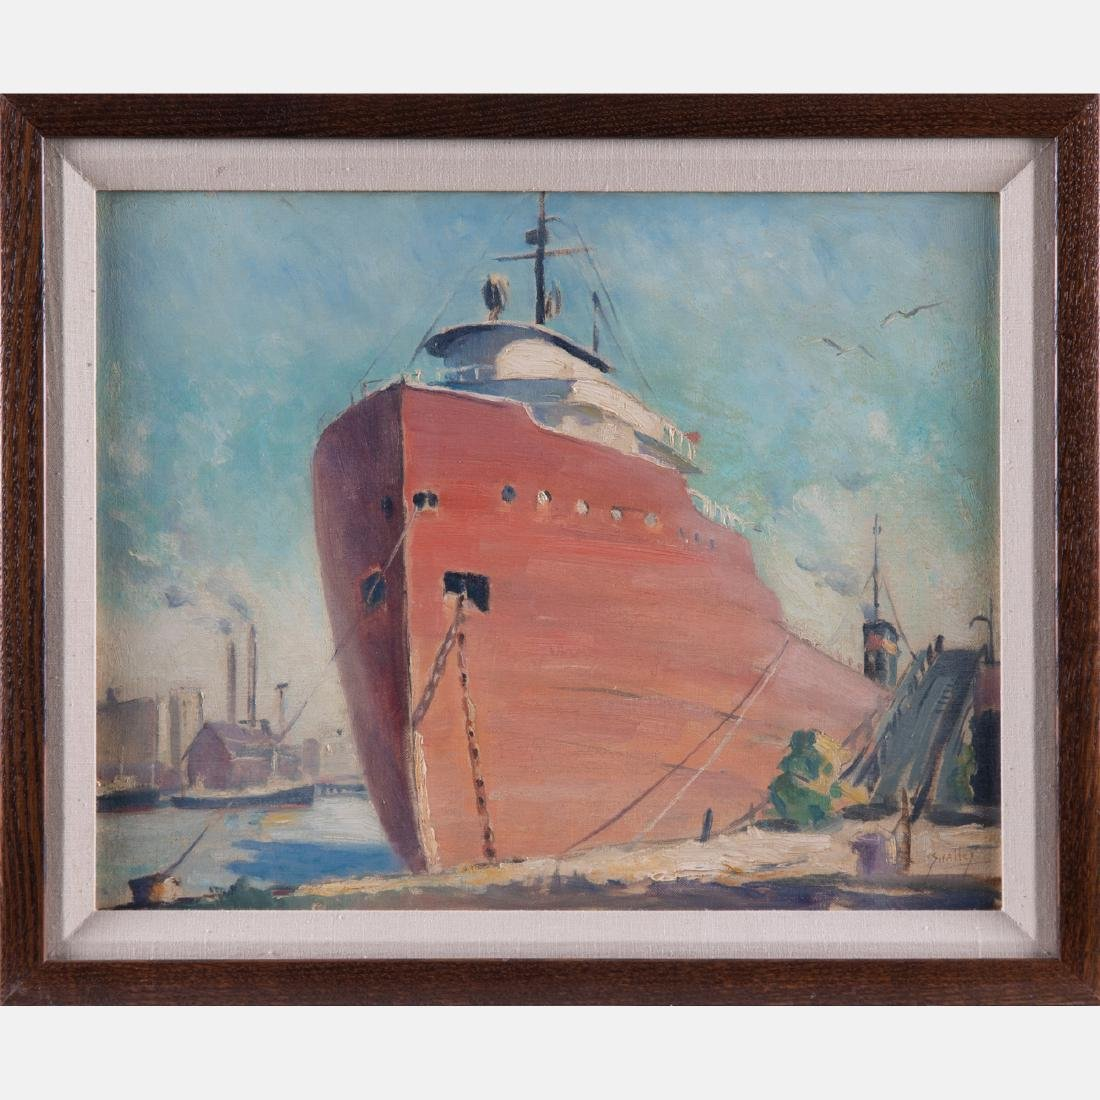 John F. Swalley (1887-1951) Docked Freighter, Oil on - 2